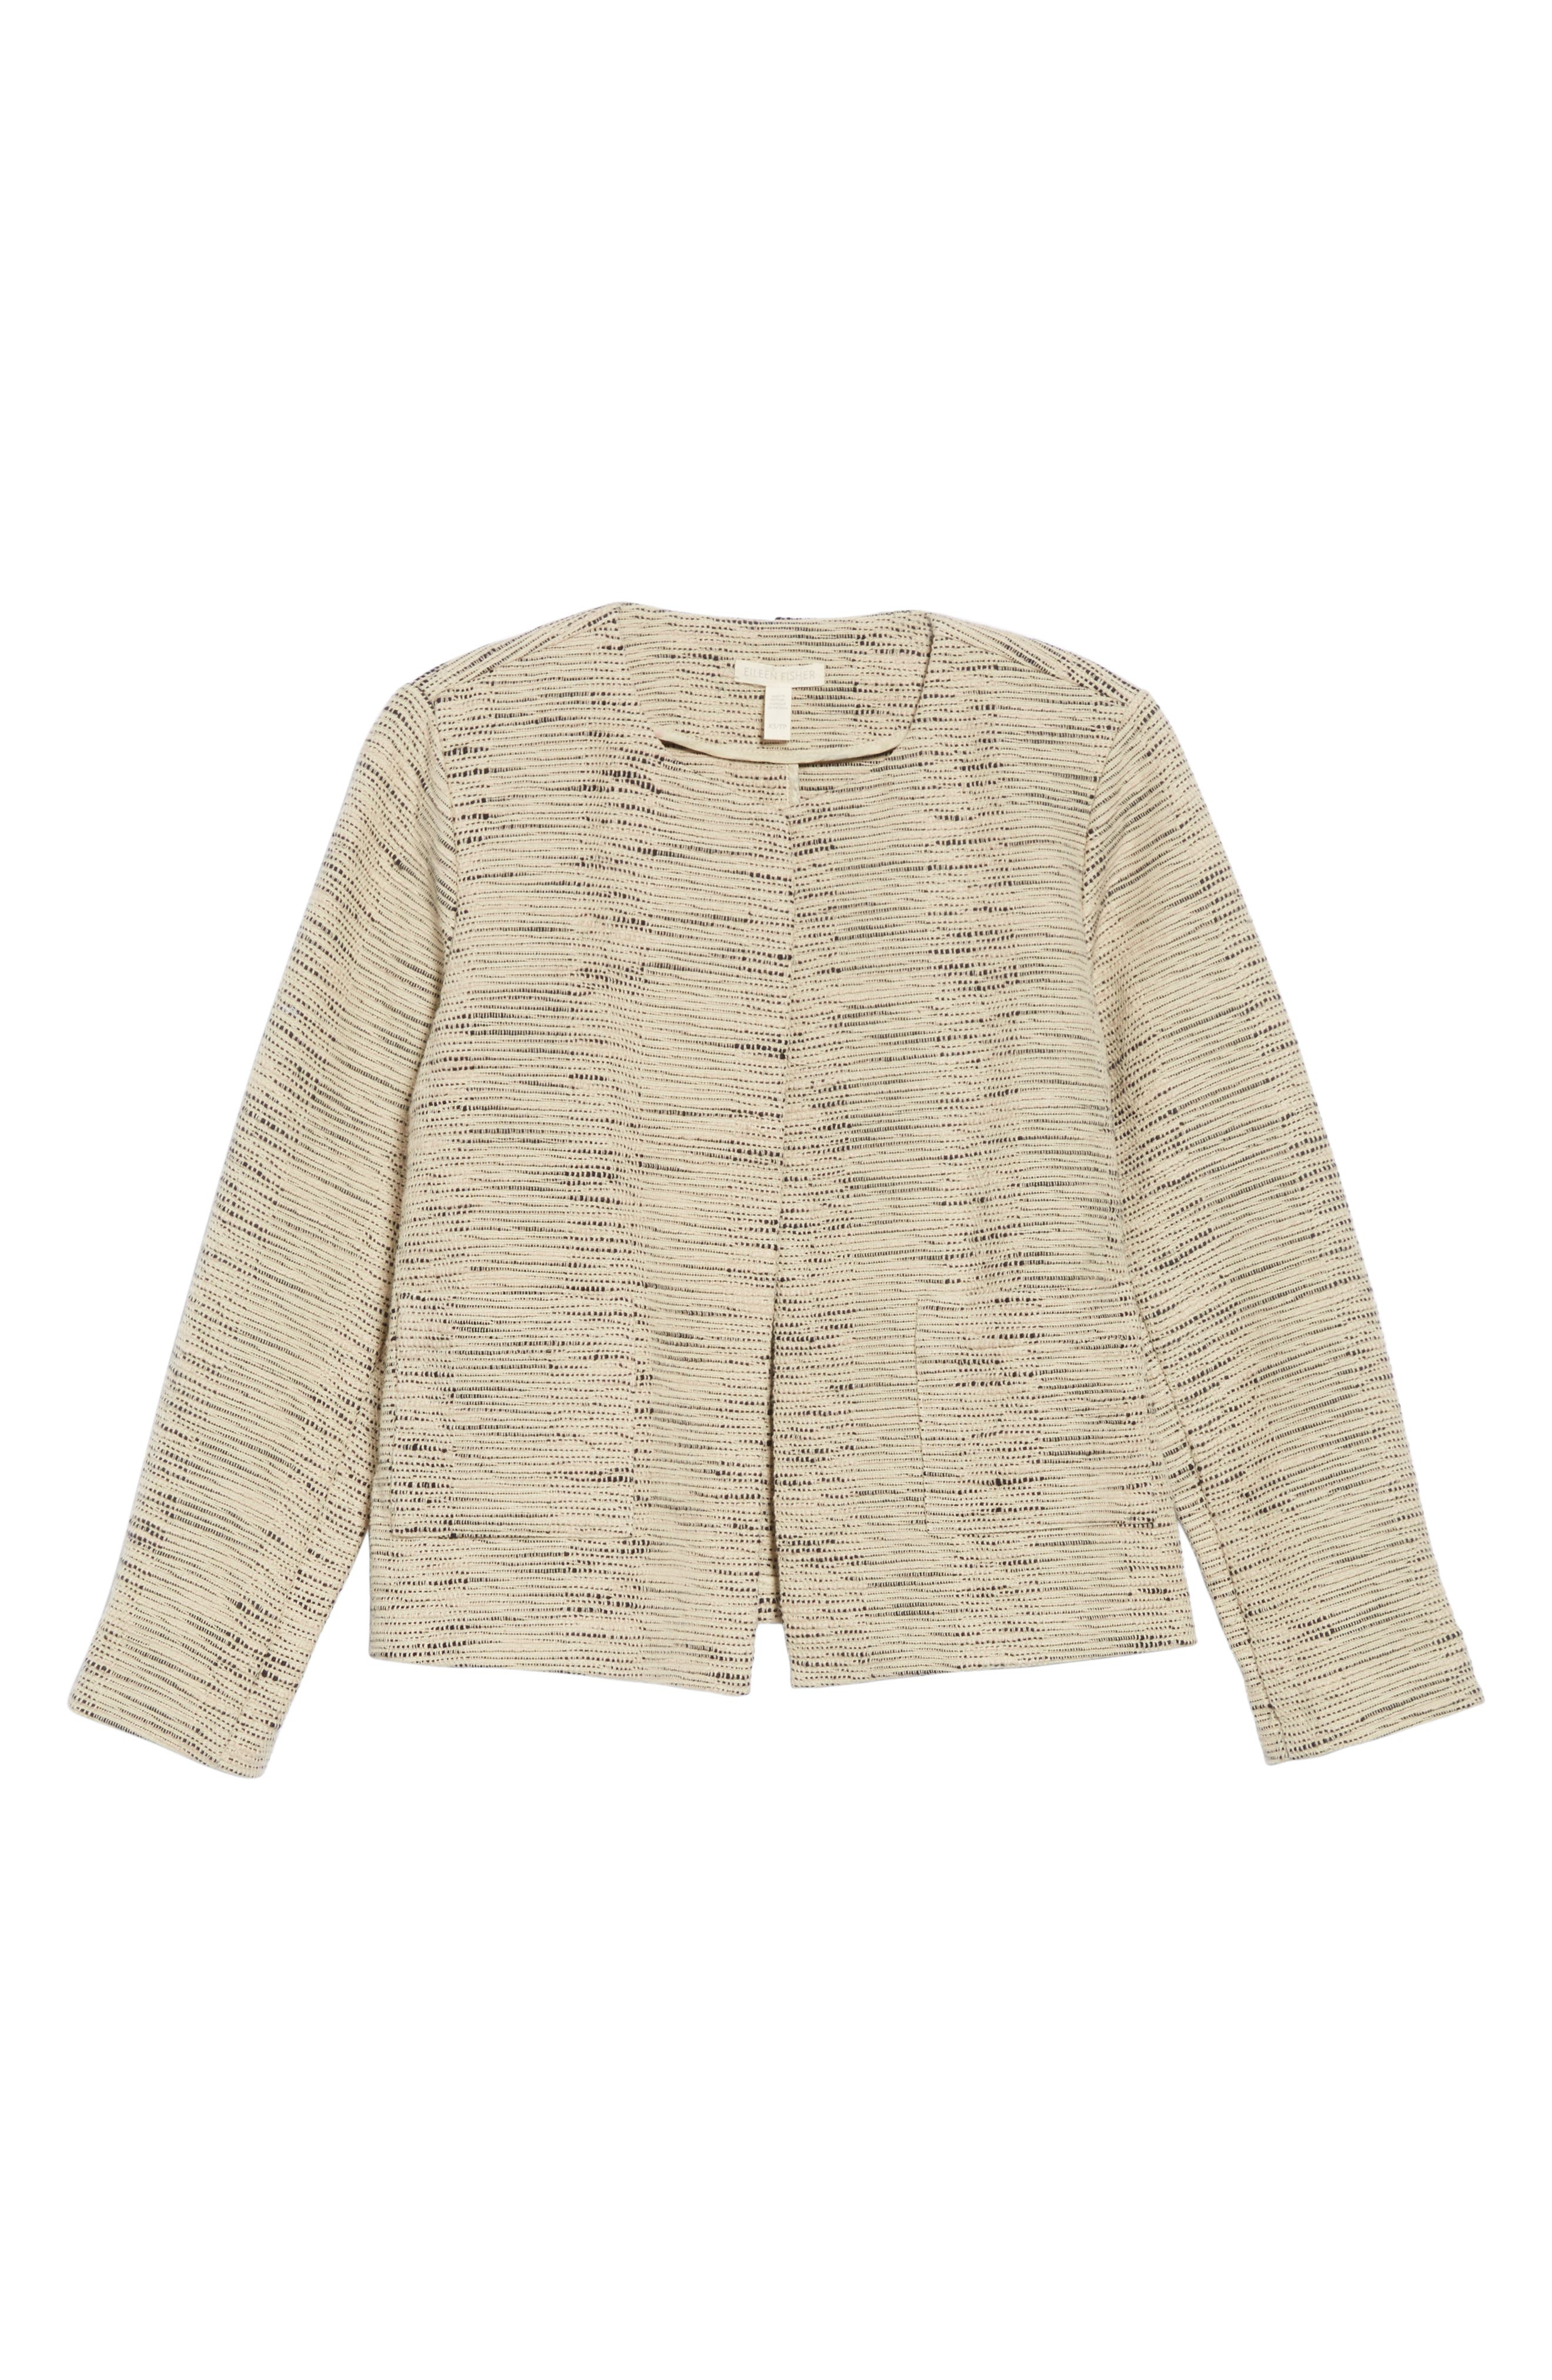 EILEEN FISHER, Woven Cotton Jacket, Alternate thumbnail 6, color, NATURAL